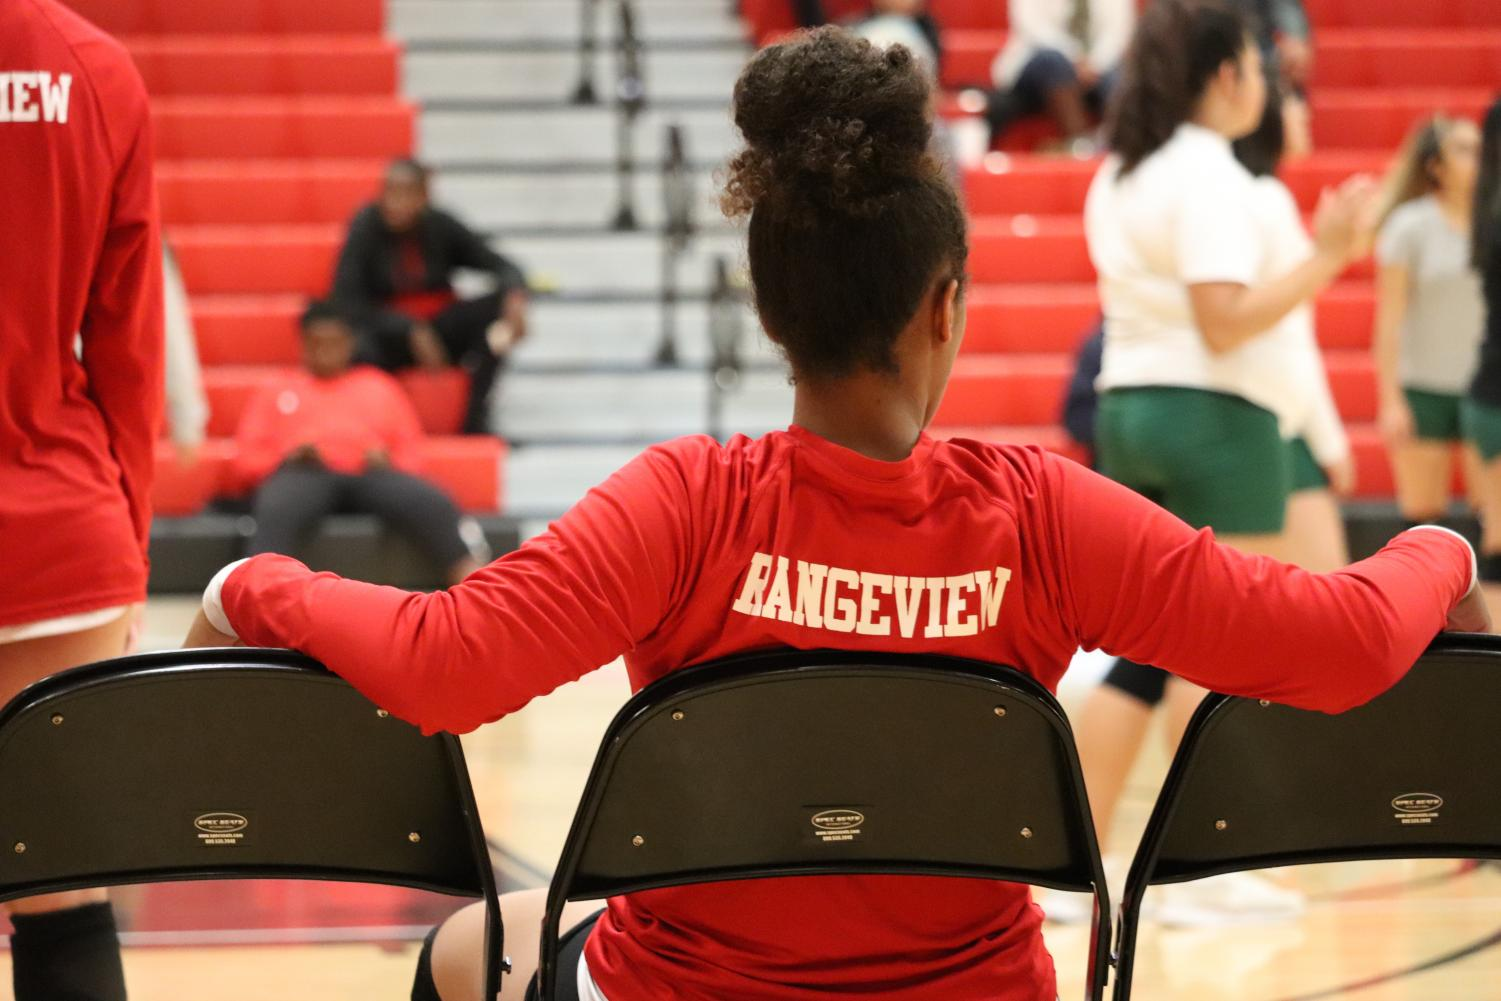 Raider sophomore Grace Solarin gets ready for a game with her Rangeview volleyball team. The volleyball season has now ended.